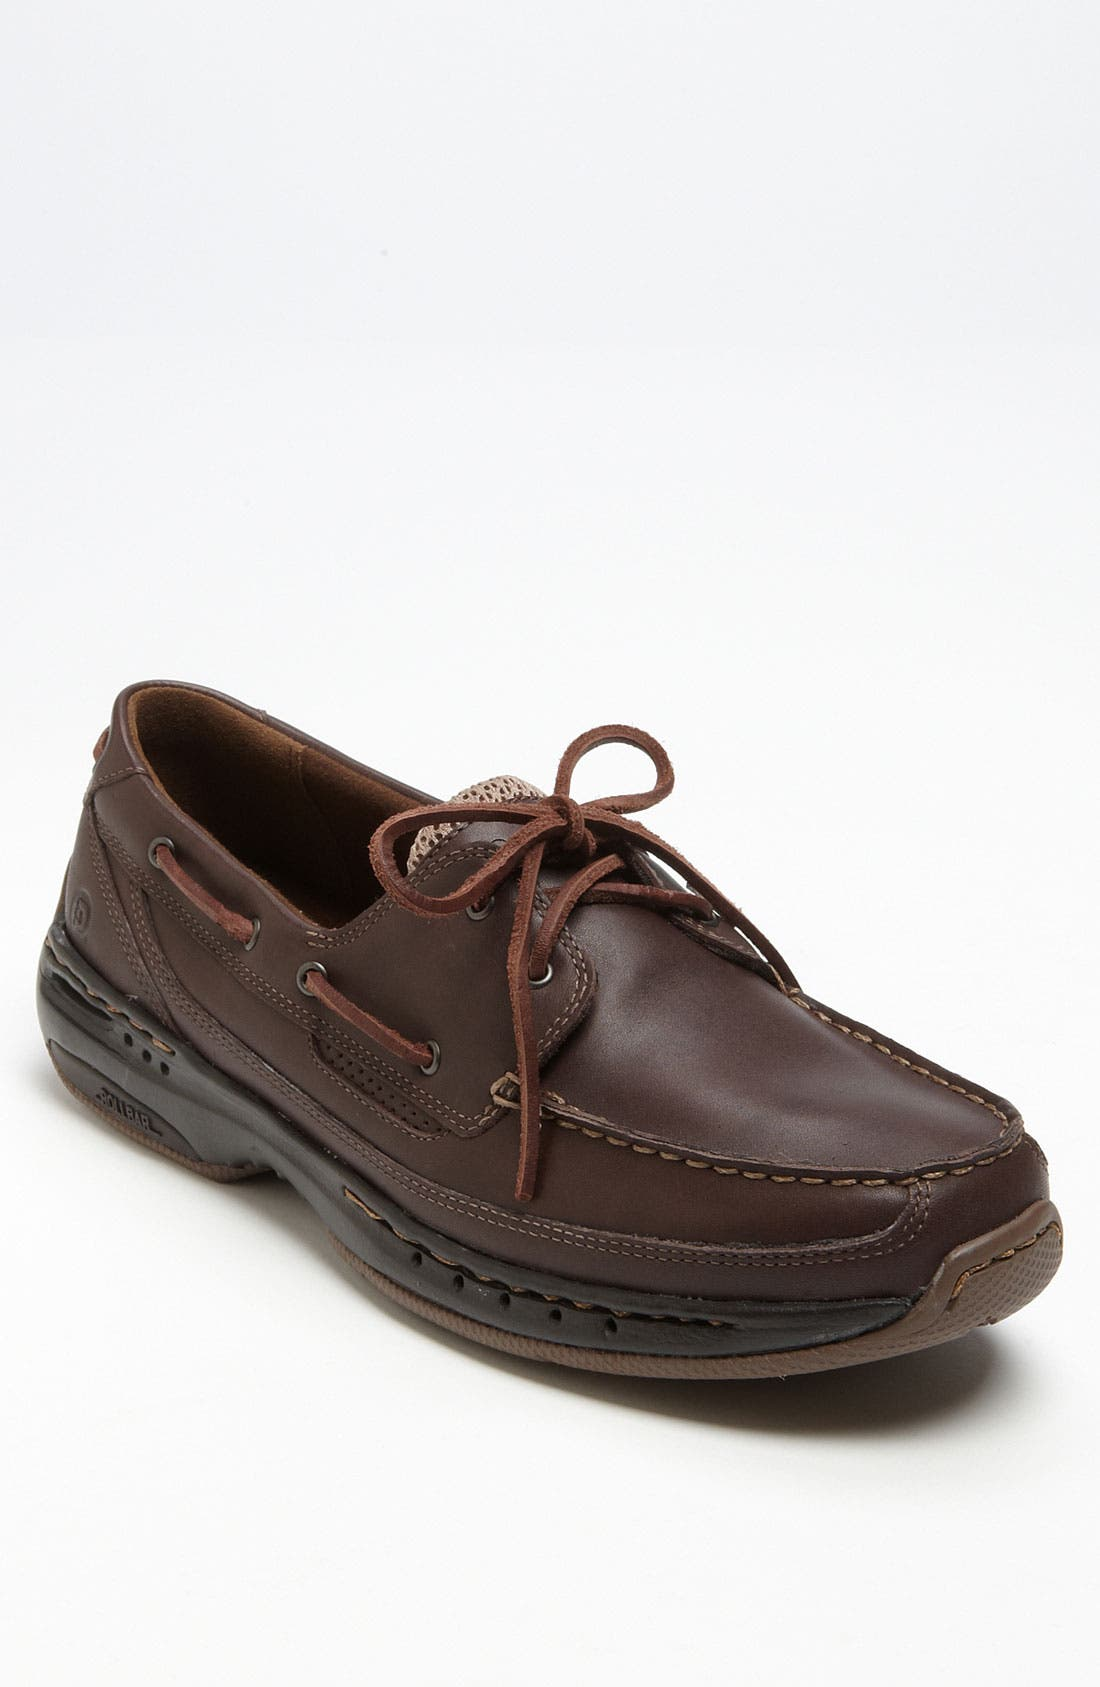 DUNHAM 'Shoreline' Boat Shoe, Main, color, BROWN LEATHER